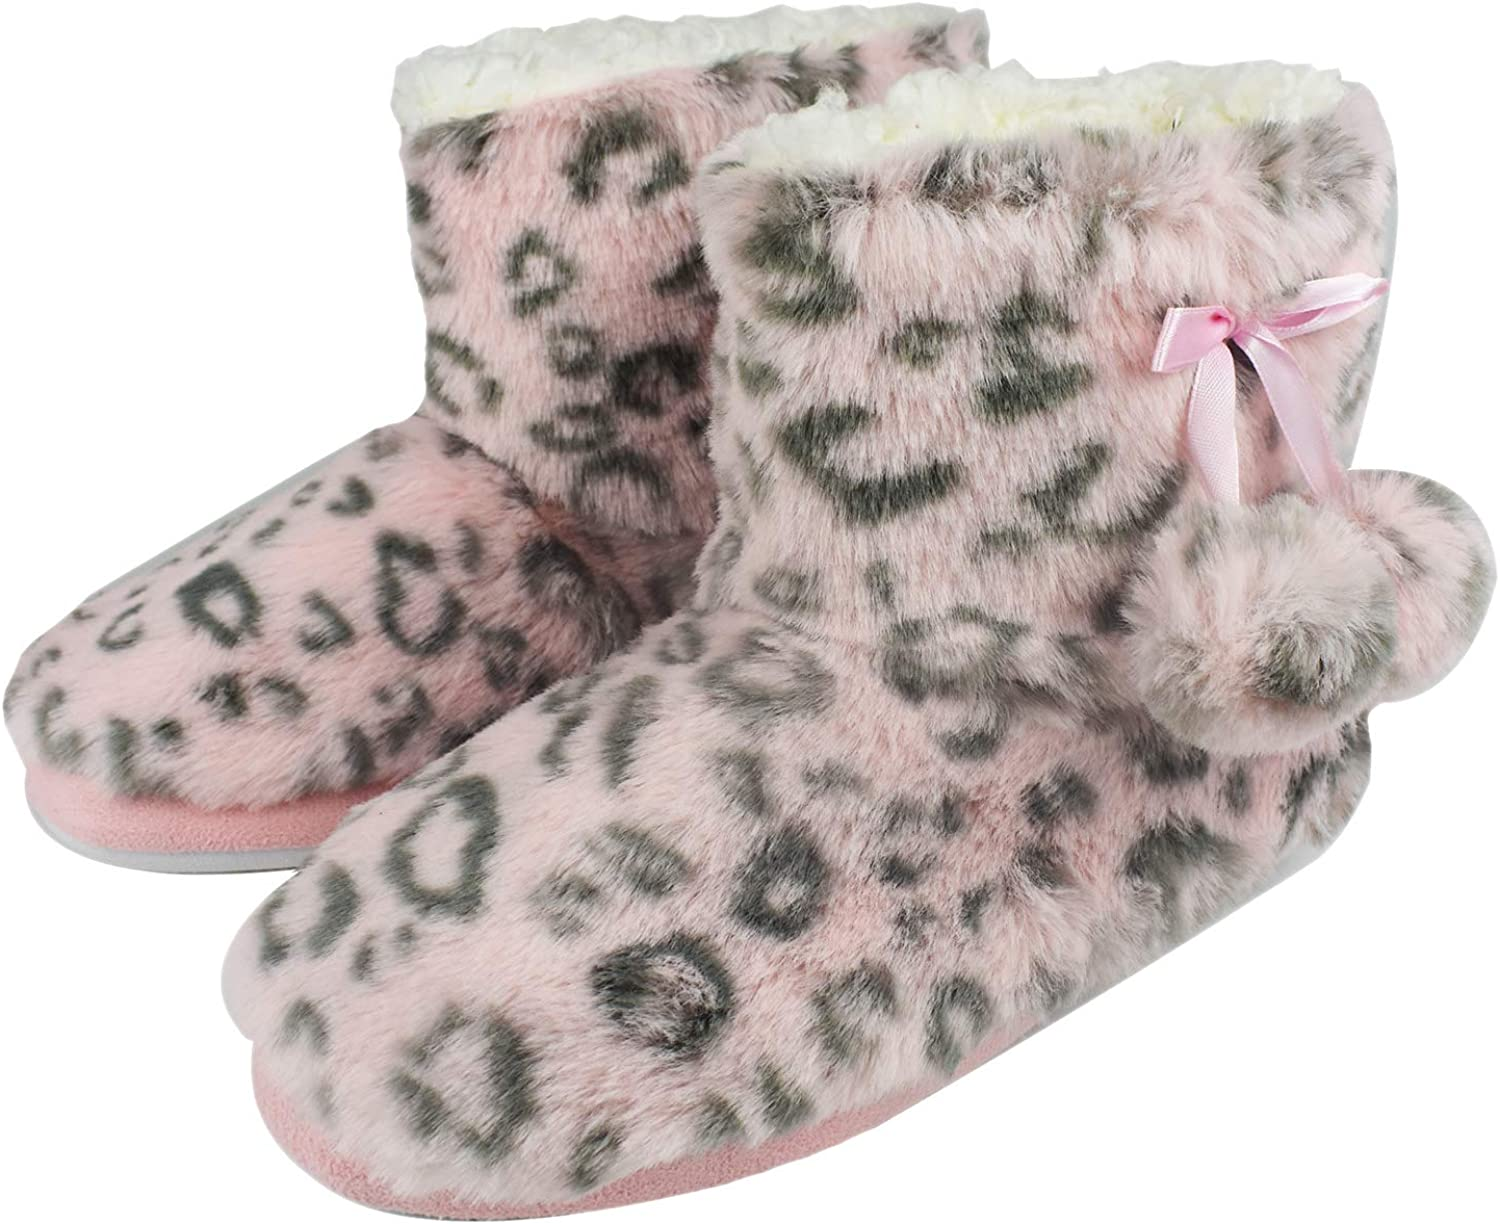 Tirzrro Girls Kids Cute Slippers with Warm Plush Fleece Free Baltimore Mall shipping New Indoor O